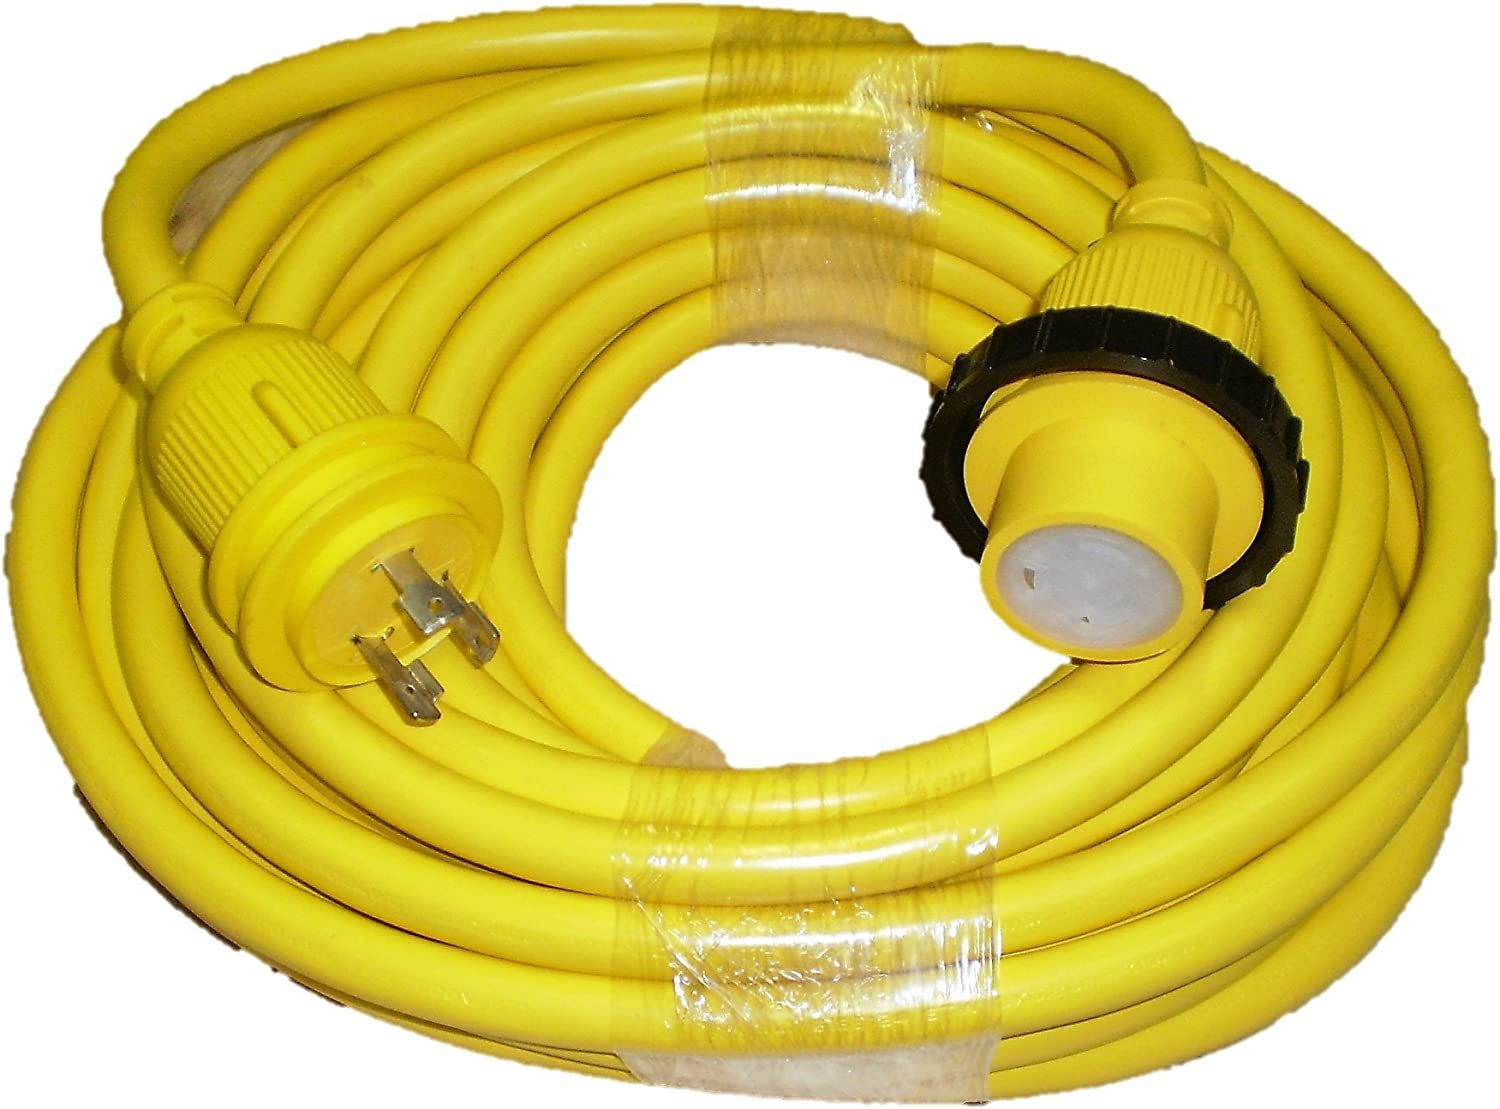 25 ft 7724 Marine Shore Power Extension Cord 30 Amp